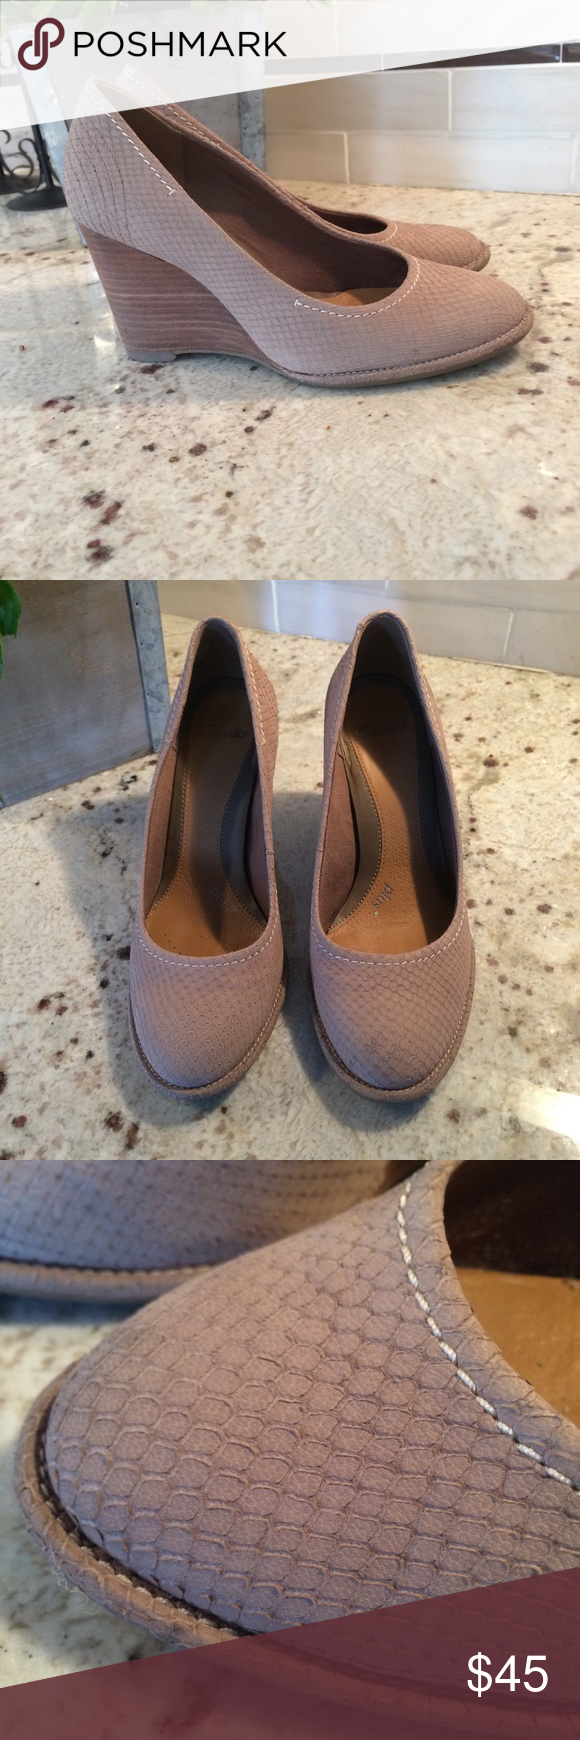 Clarks tan wedges size 7 us Tan wedges, Clarks, Wedges